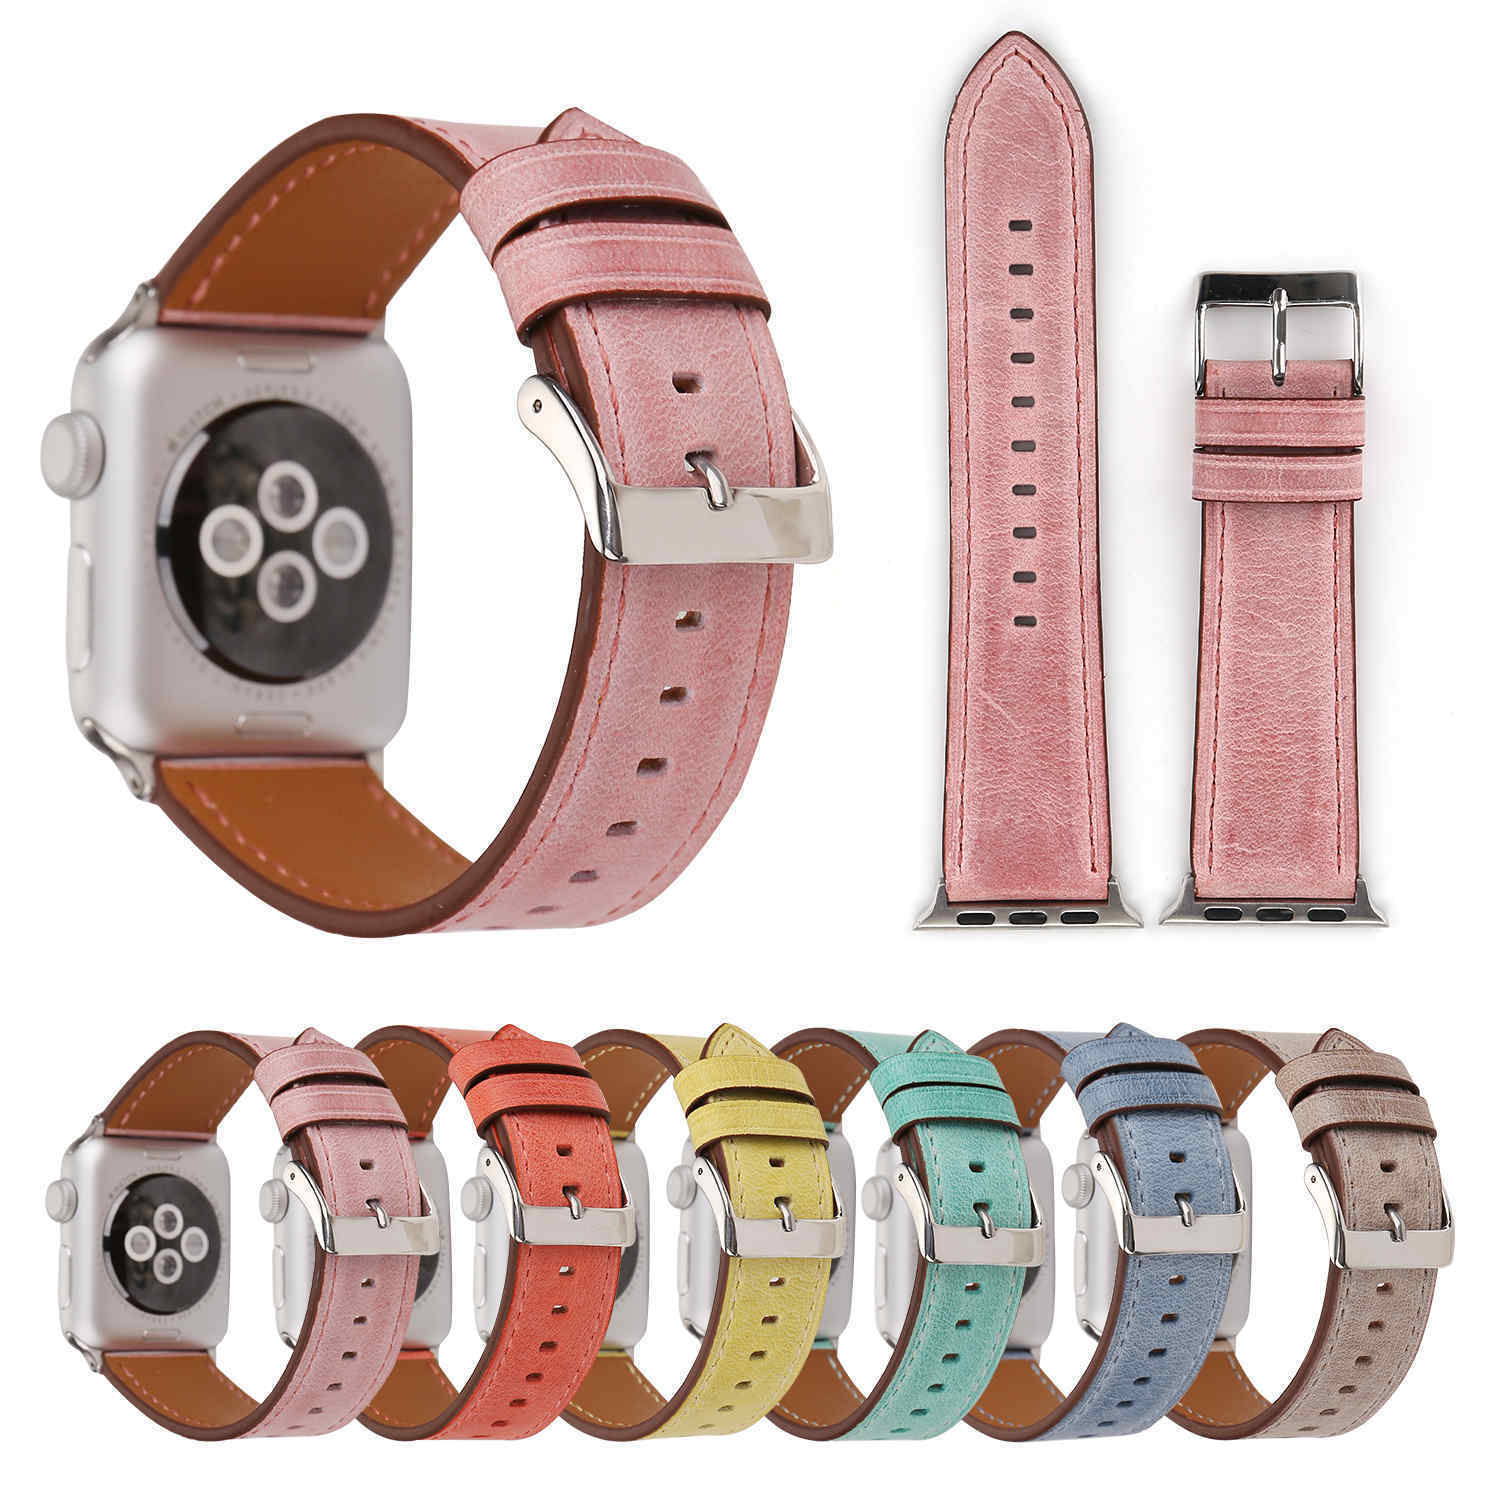 Stylish Genuine Leather Strap For Apple Watch Series 3 2 1 Watch Band W Adapters Ebay Fashion Apple Watch Leather Leather Watch Bands Apple Watch Replacement Bands